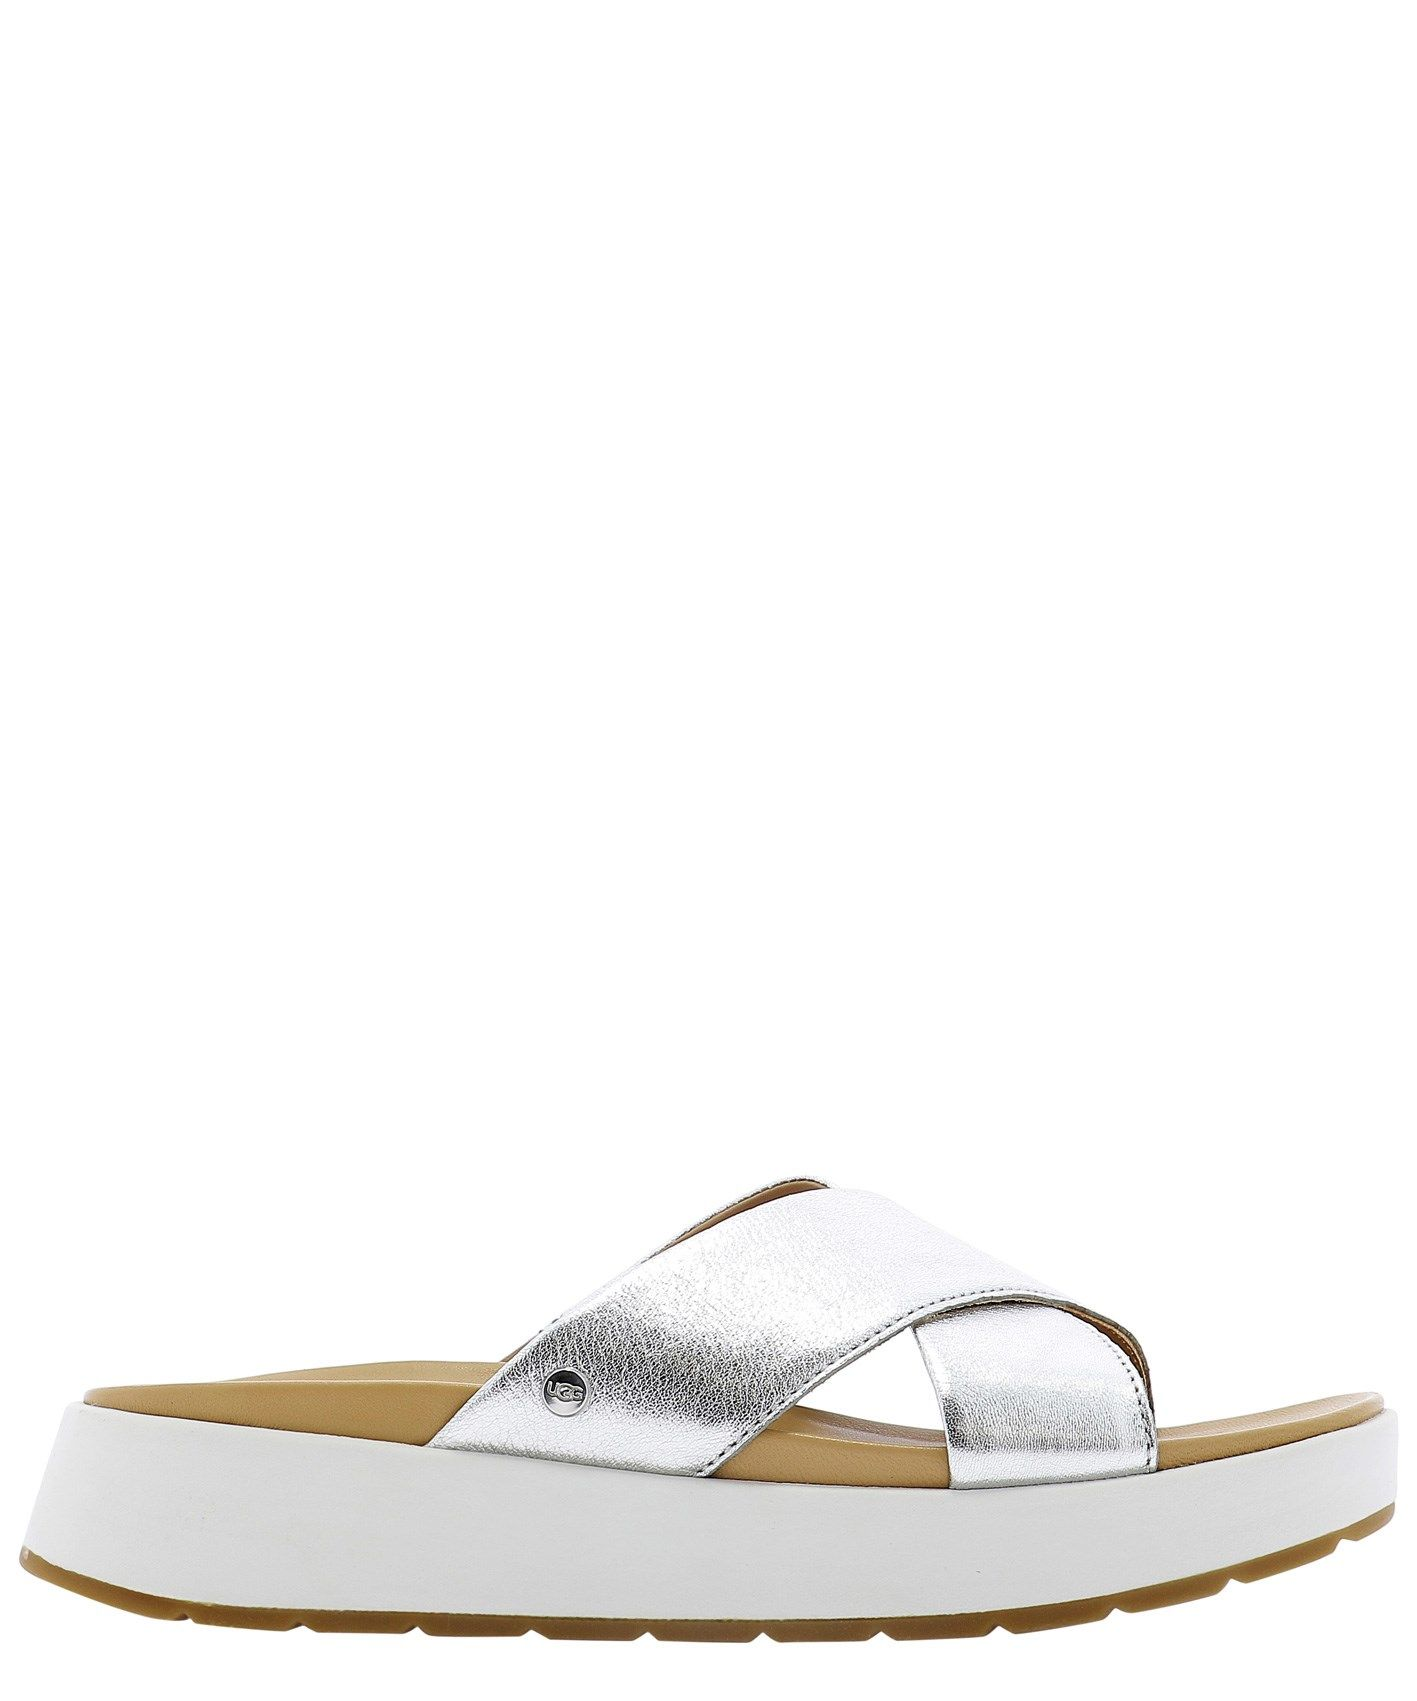 Ugg UGG WOMEN'S 1119743WSILVER SILVER OTHER MATERIALS SANDALS